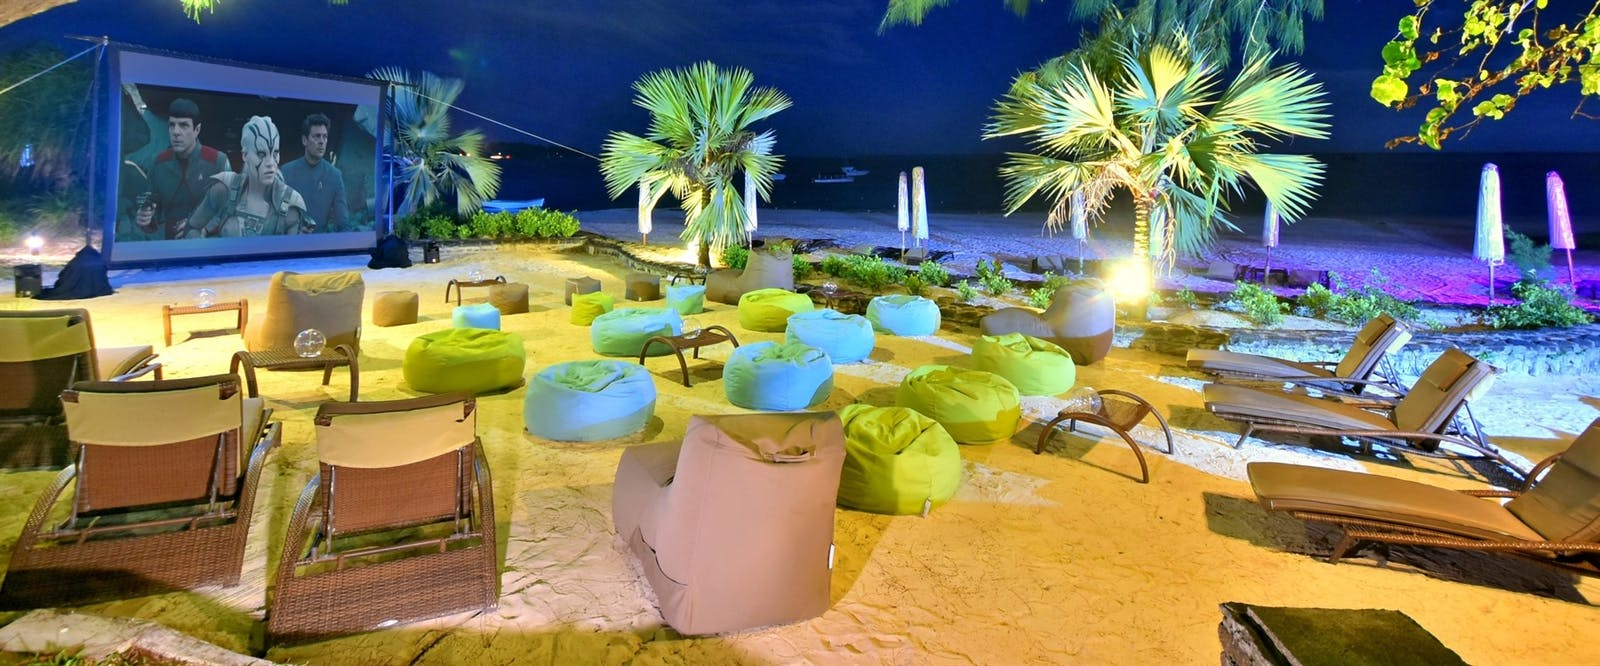 Cinema on the Beach at The Residence Mauritius, Indian Ocean